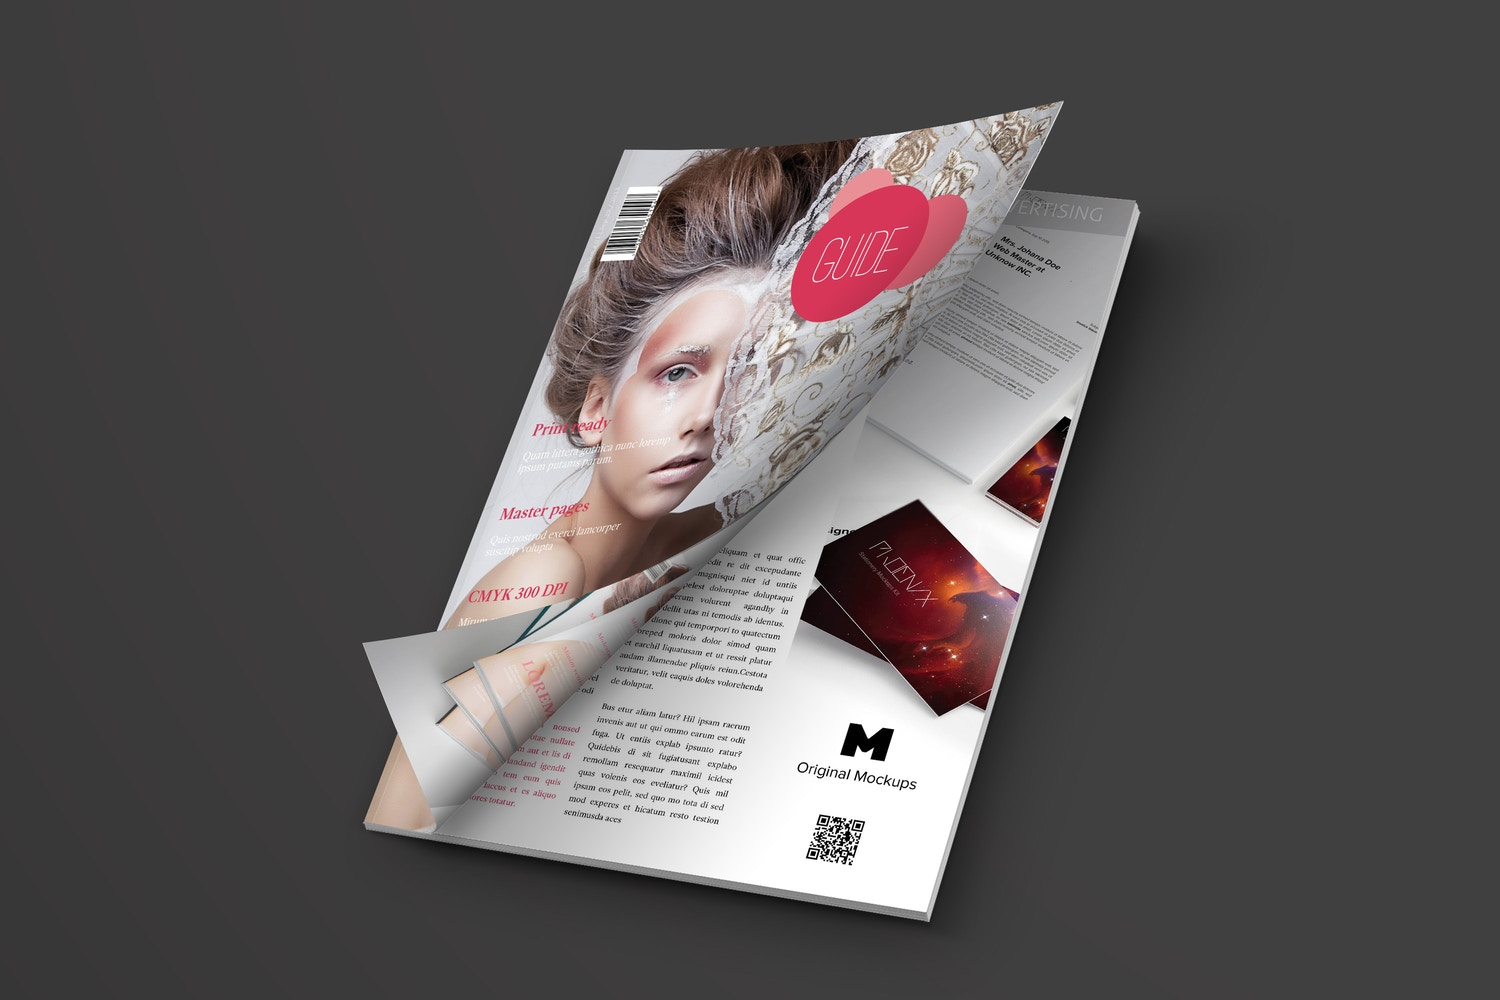 Background Customizable, use the color you want to enhance the Magazine Layout. Design By: Pagephilia